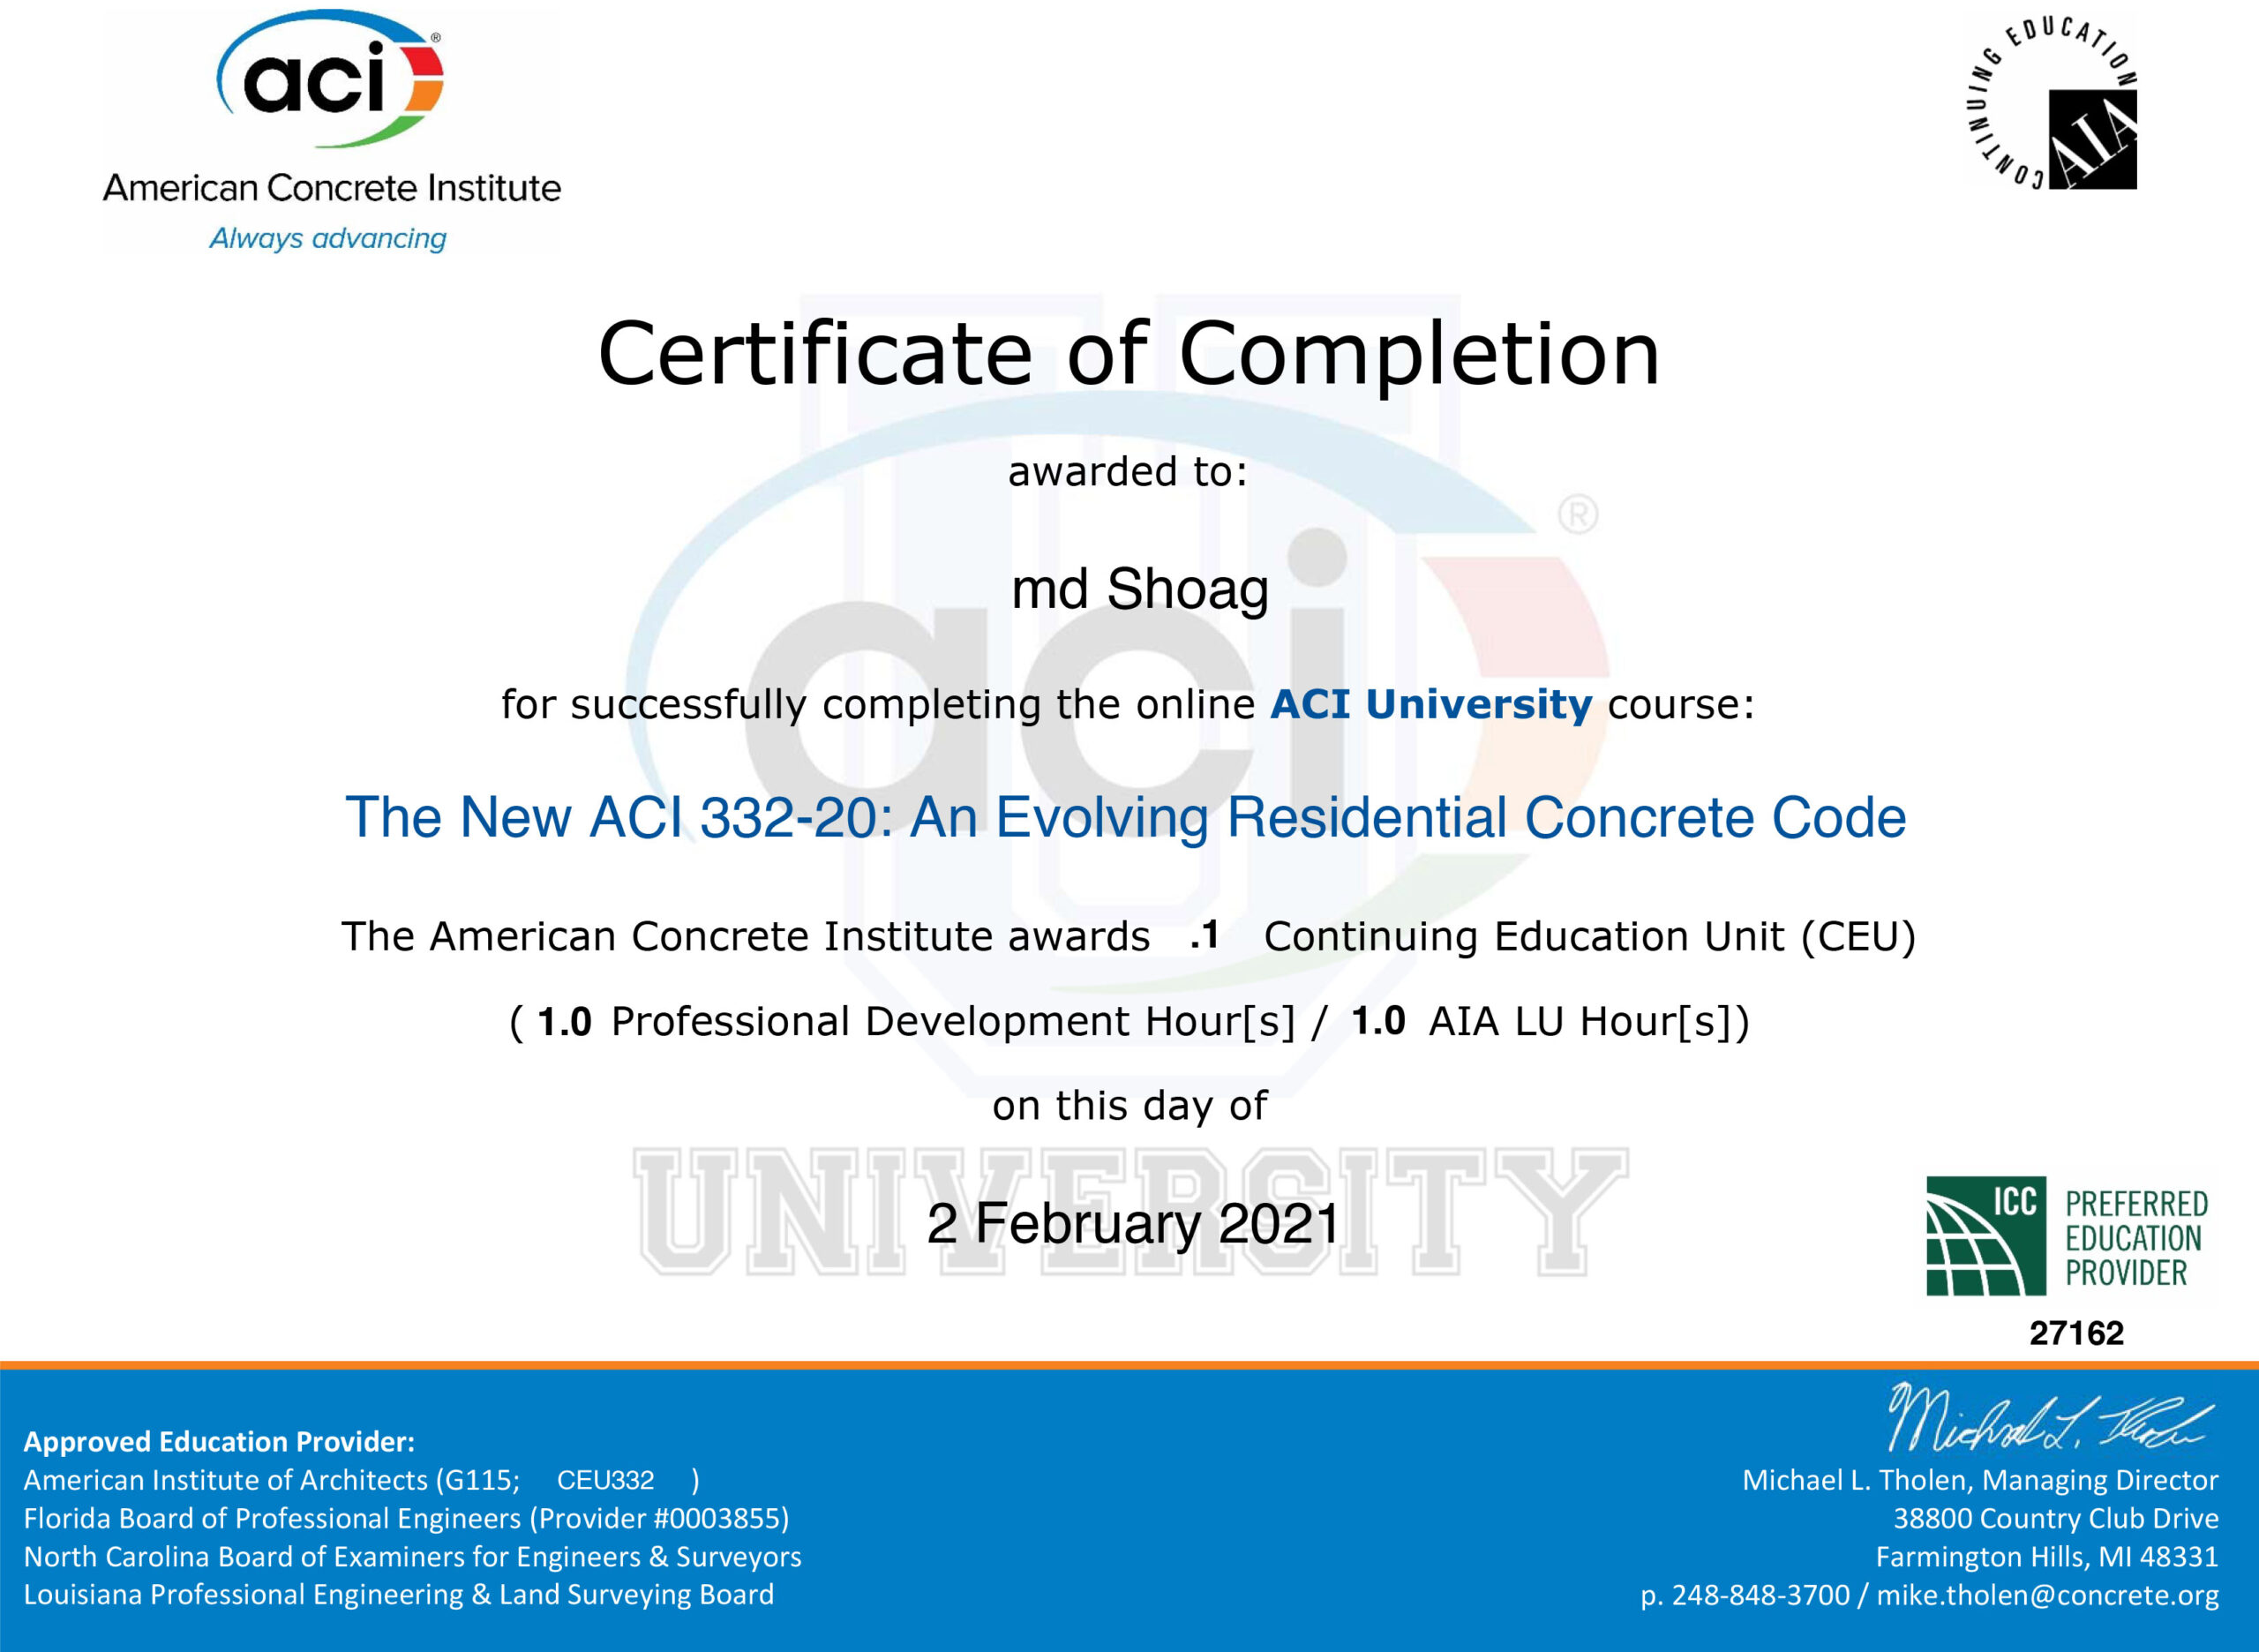 Completion Certificate_ The New ACI 332-20_ An Evolving Residential Concrete Code